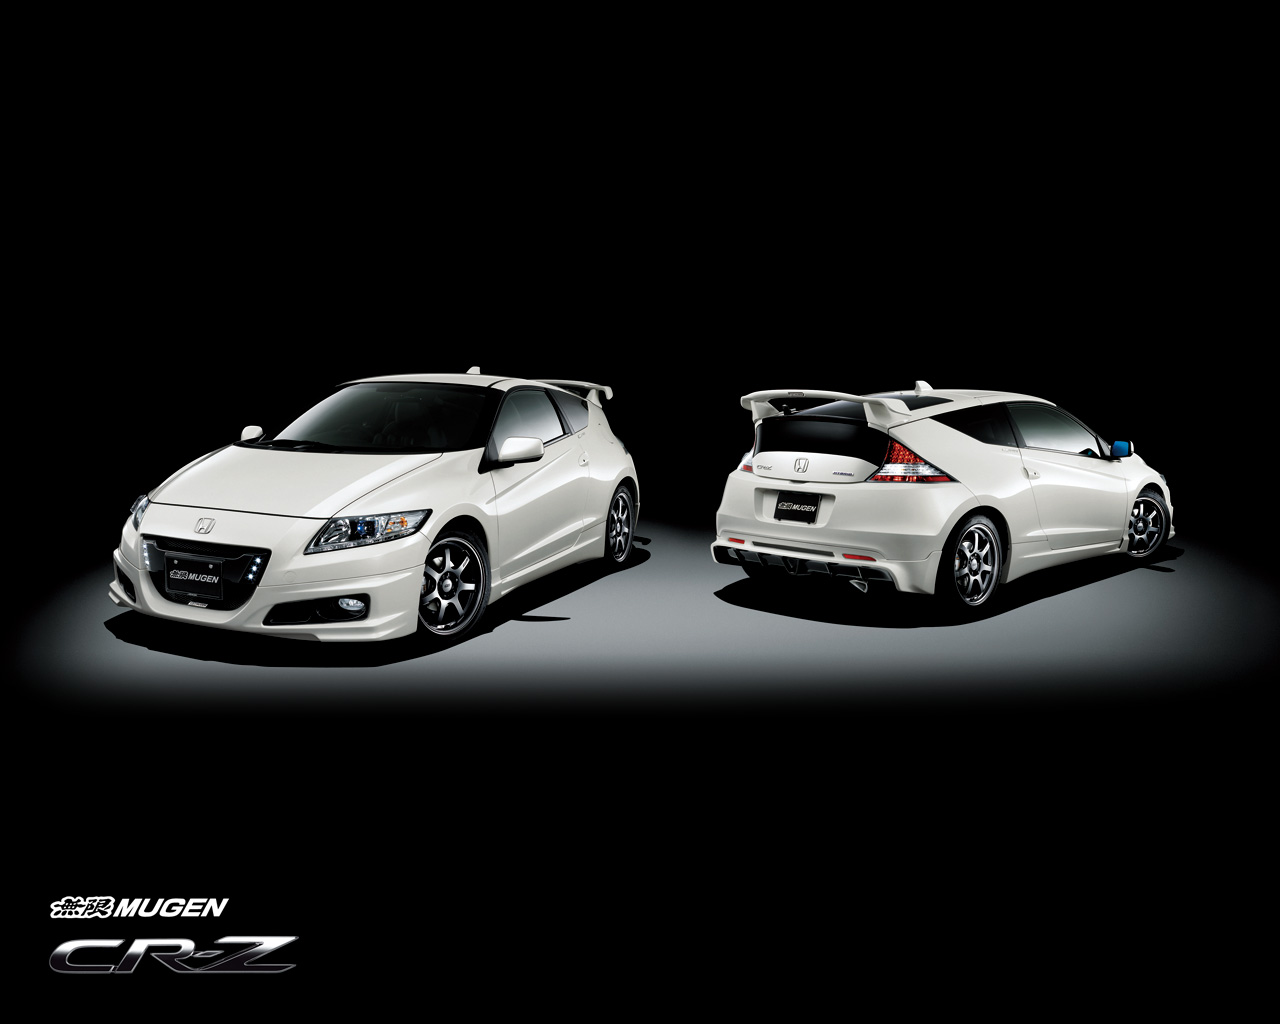 Honda-CR-Z-Mugen-Hybrid-Advanced-Performance-01